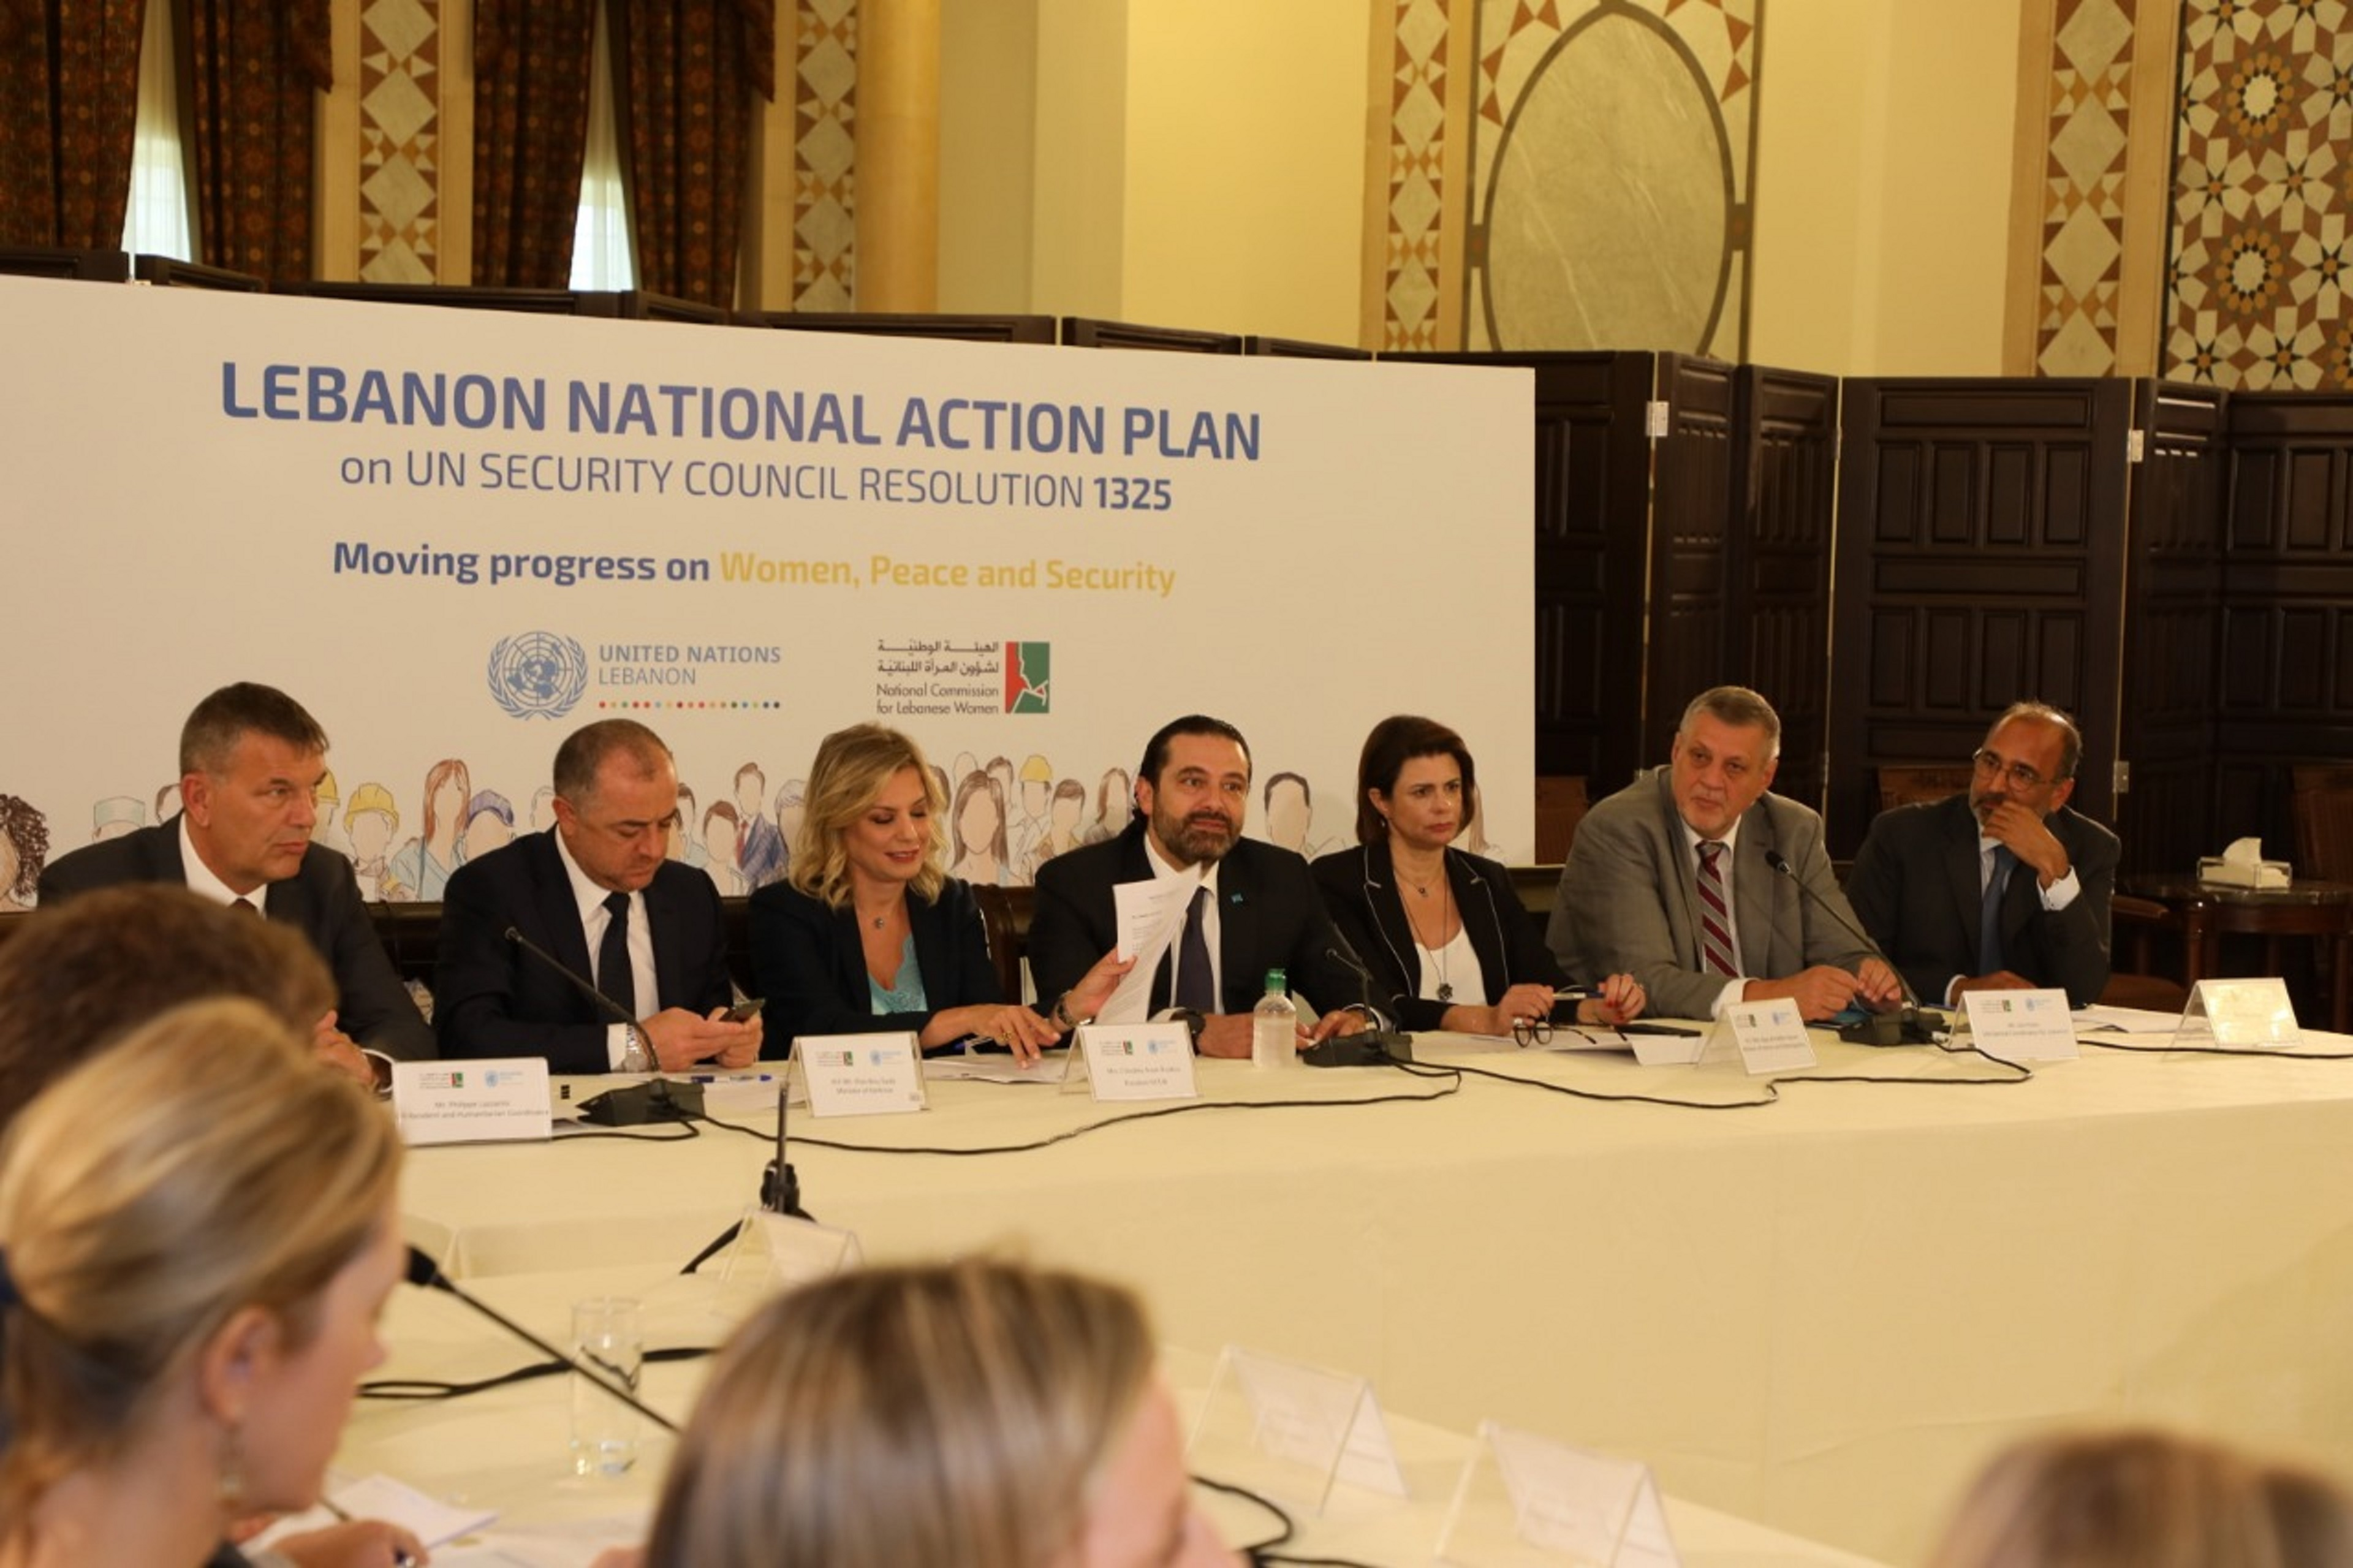 Press Release: The National Commission for Lebanese Women presents Lebanon's National Action Plan on UN Security Council Resolution 1325 on Women, Peace and Security, under the patronage of His Excellency Prime Minister Hariri at the Grand Serail